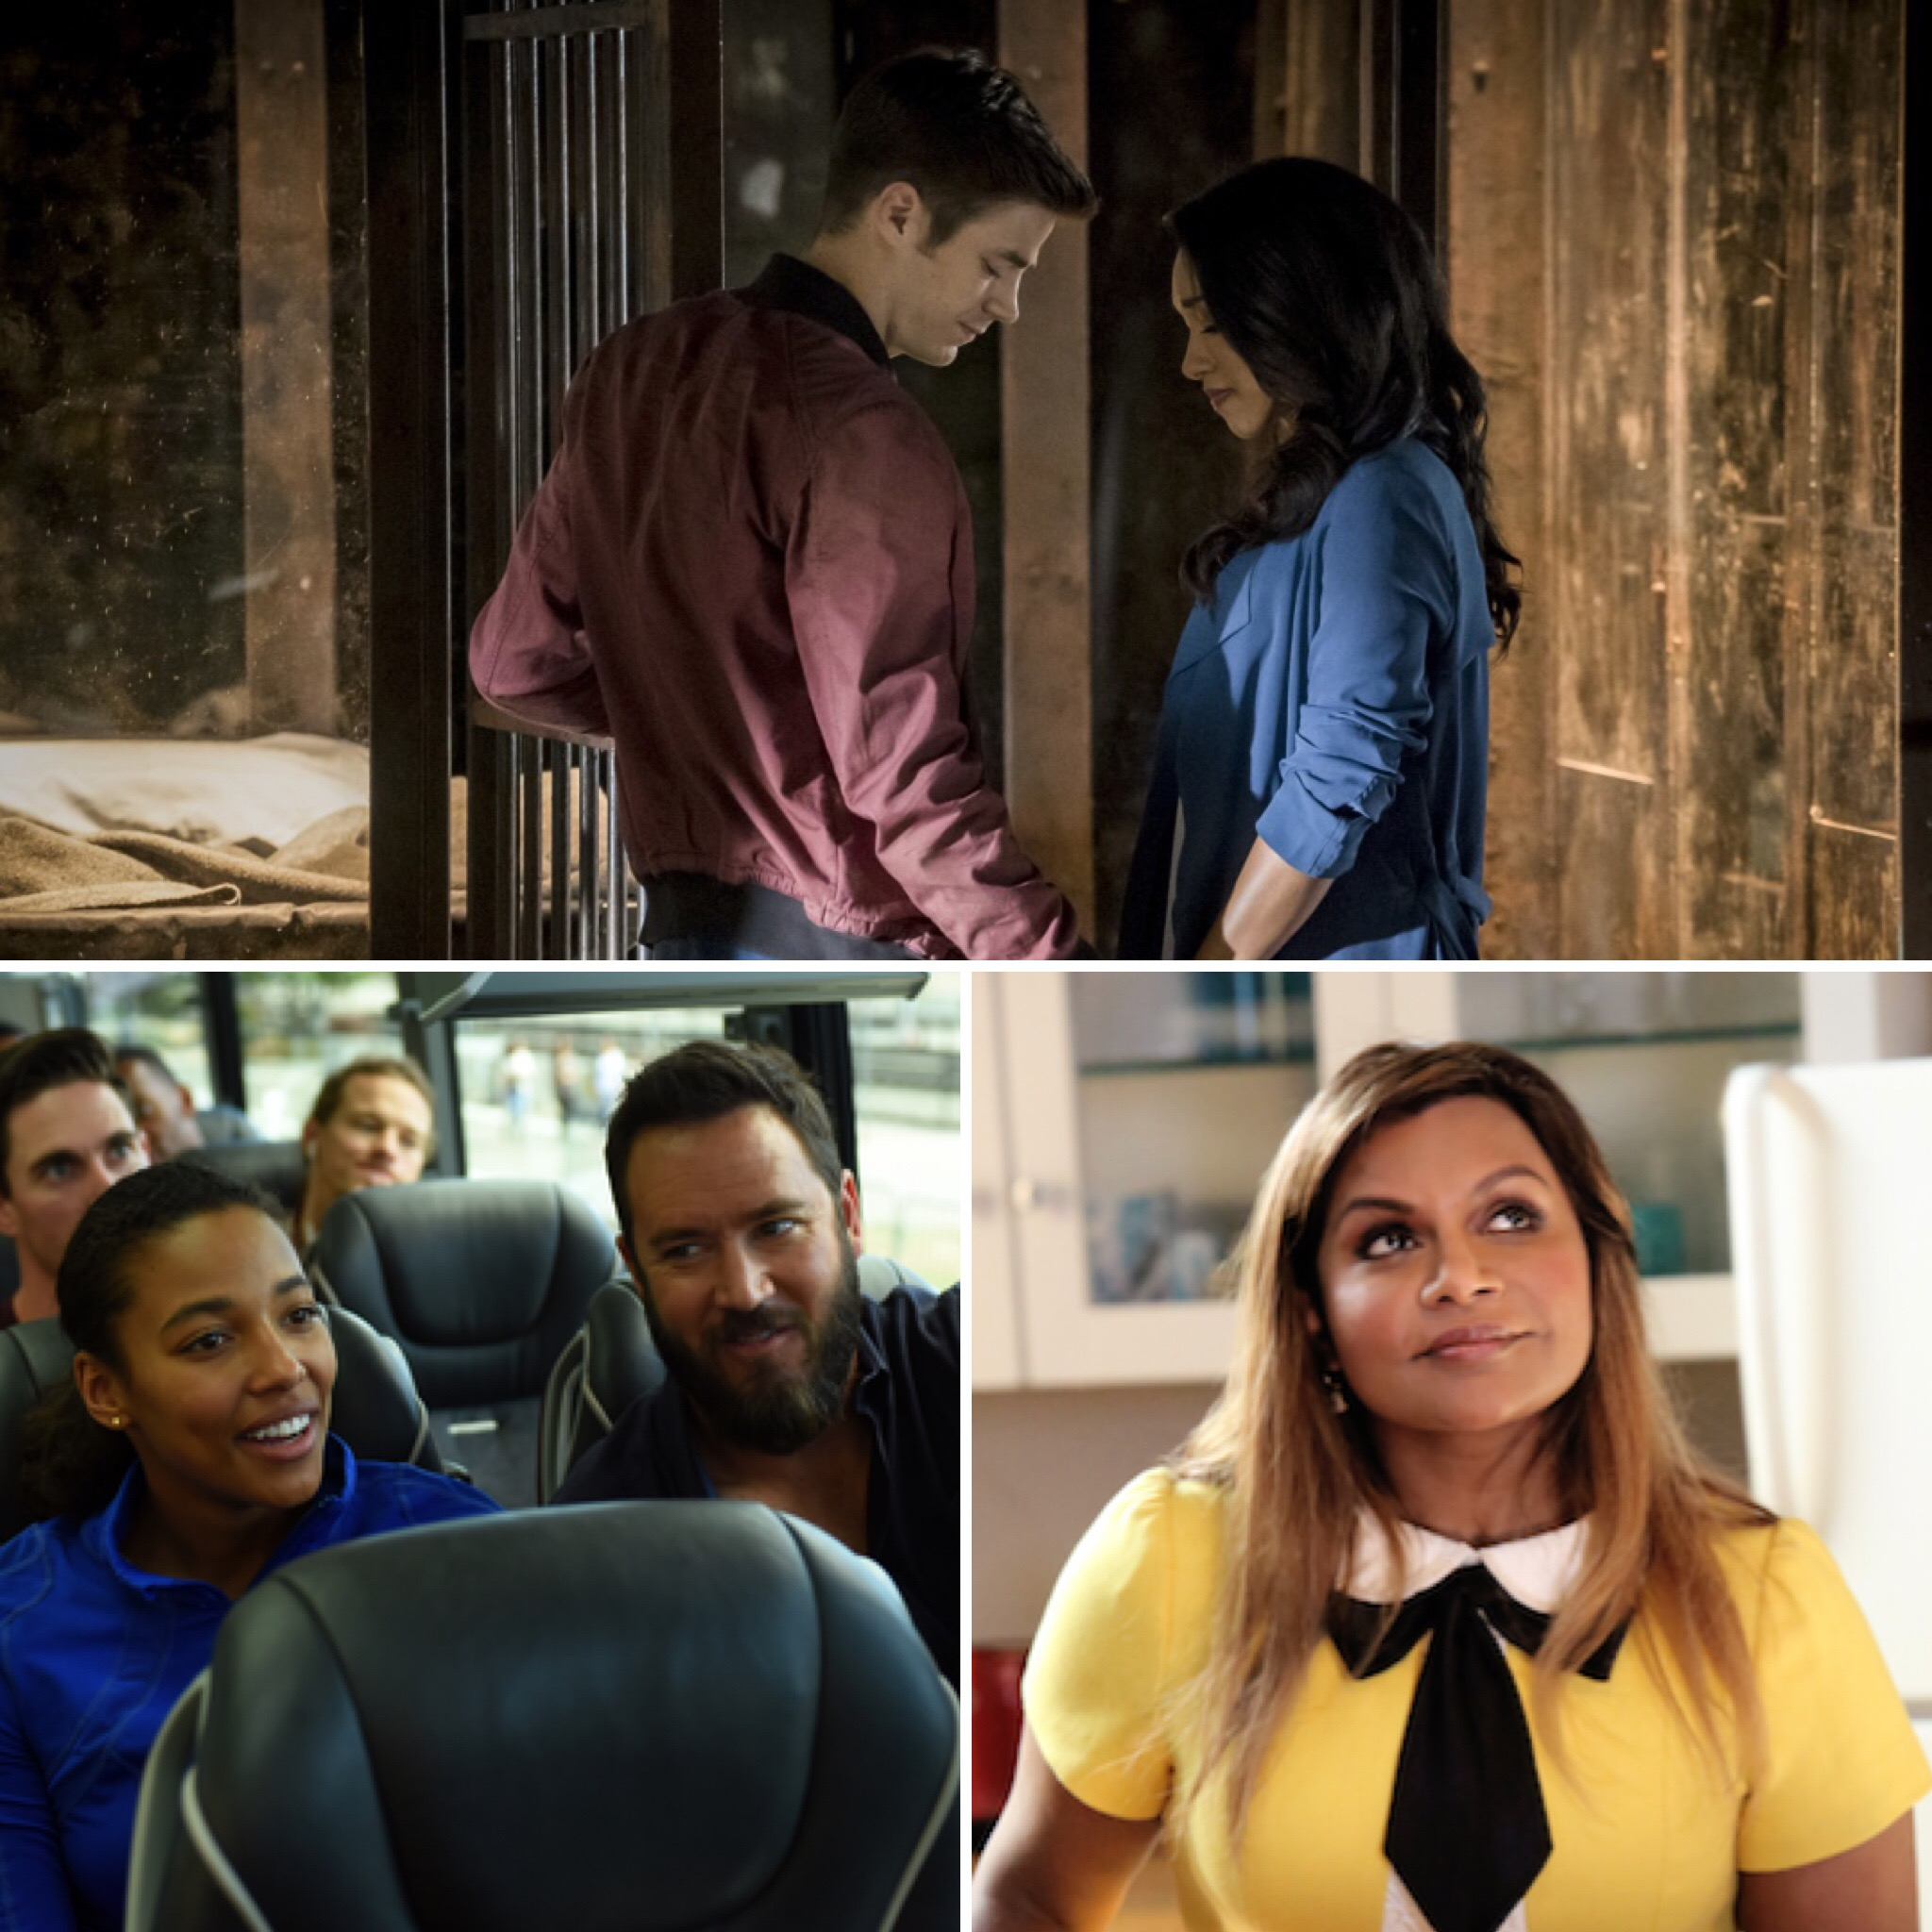 Relationship Recap: Pitch, The Mindy Project, The Flash